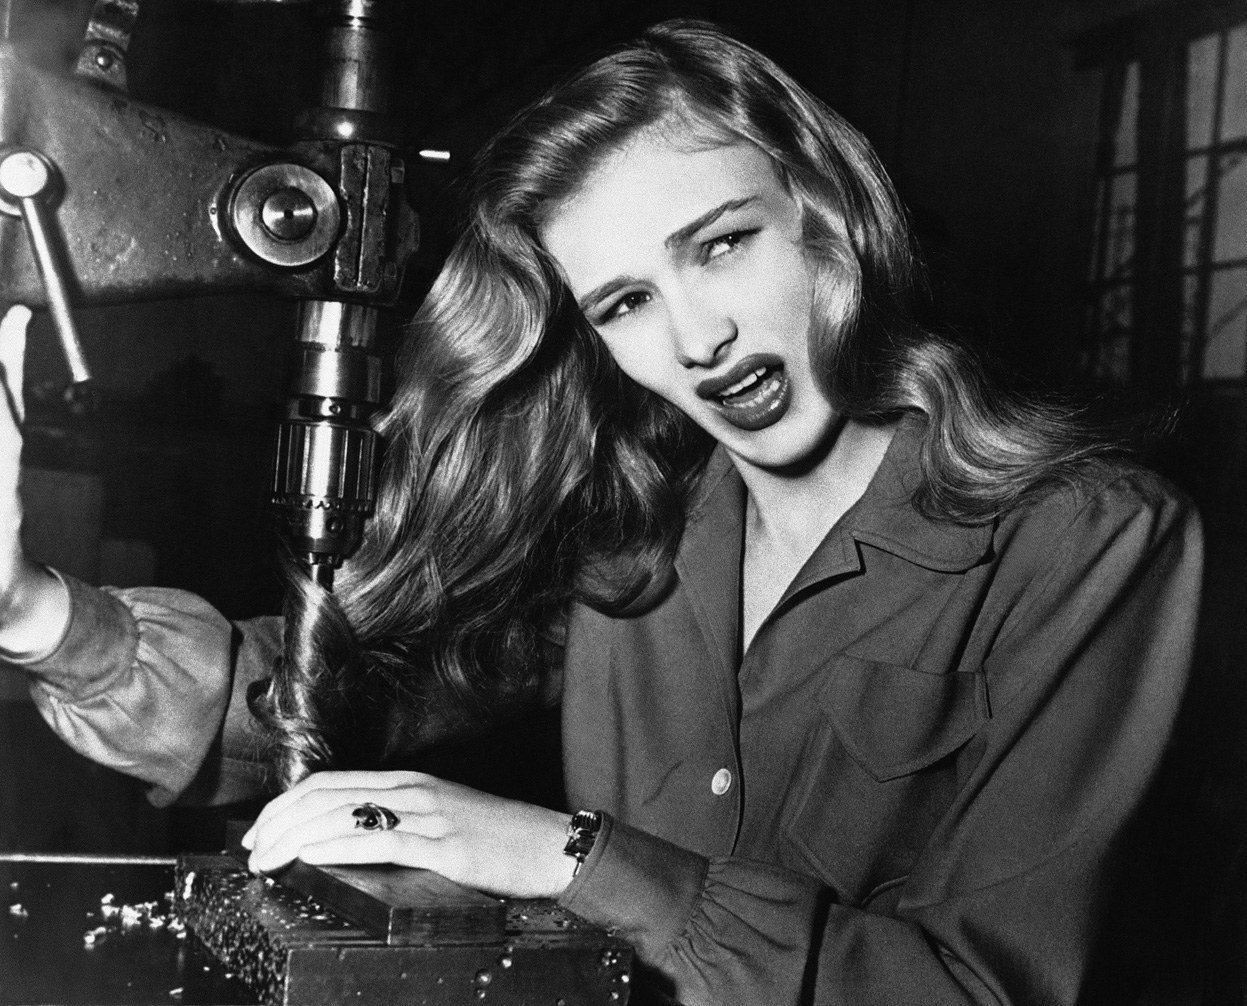 American film actress Veronica Lake illustrates what can happen to women war workers when they don't wear their hair back while working at factories, 1943 (via Retronaut)